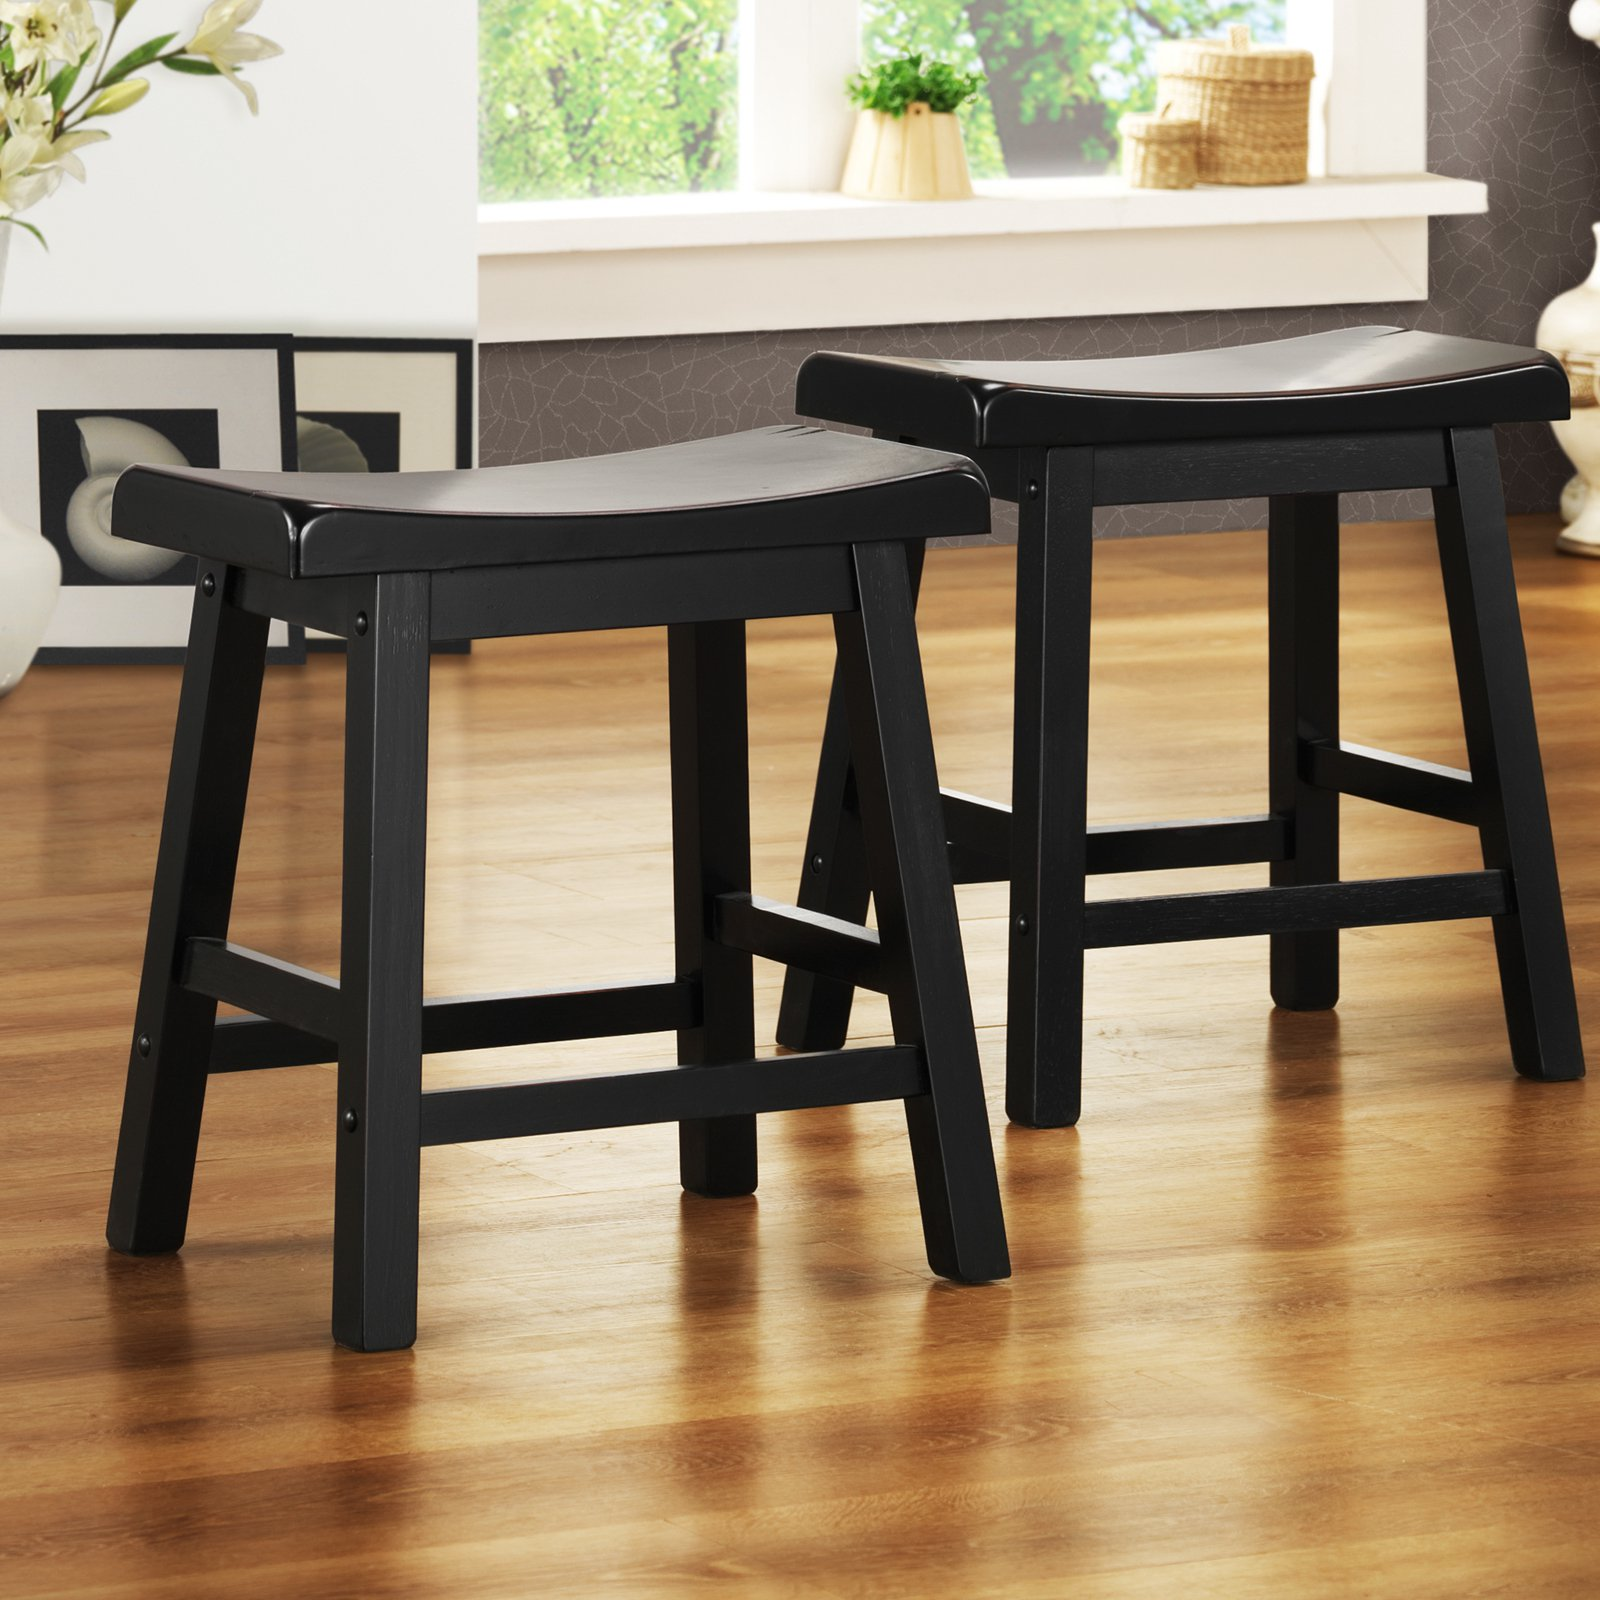 Ashby Kitchen Stools 18u0027u0027, Set Of 2, Black Rubbed   Walmart.com